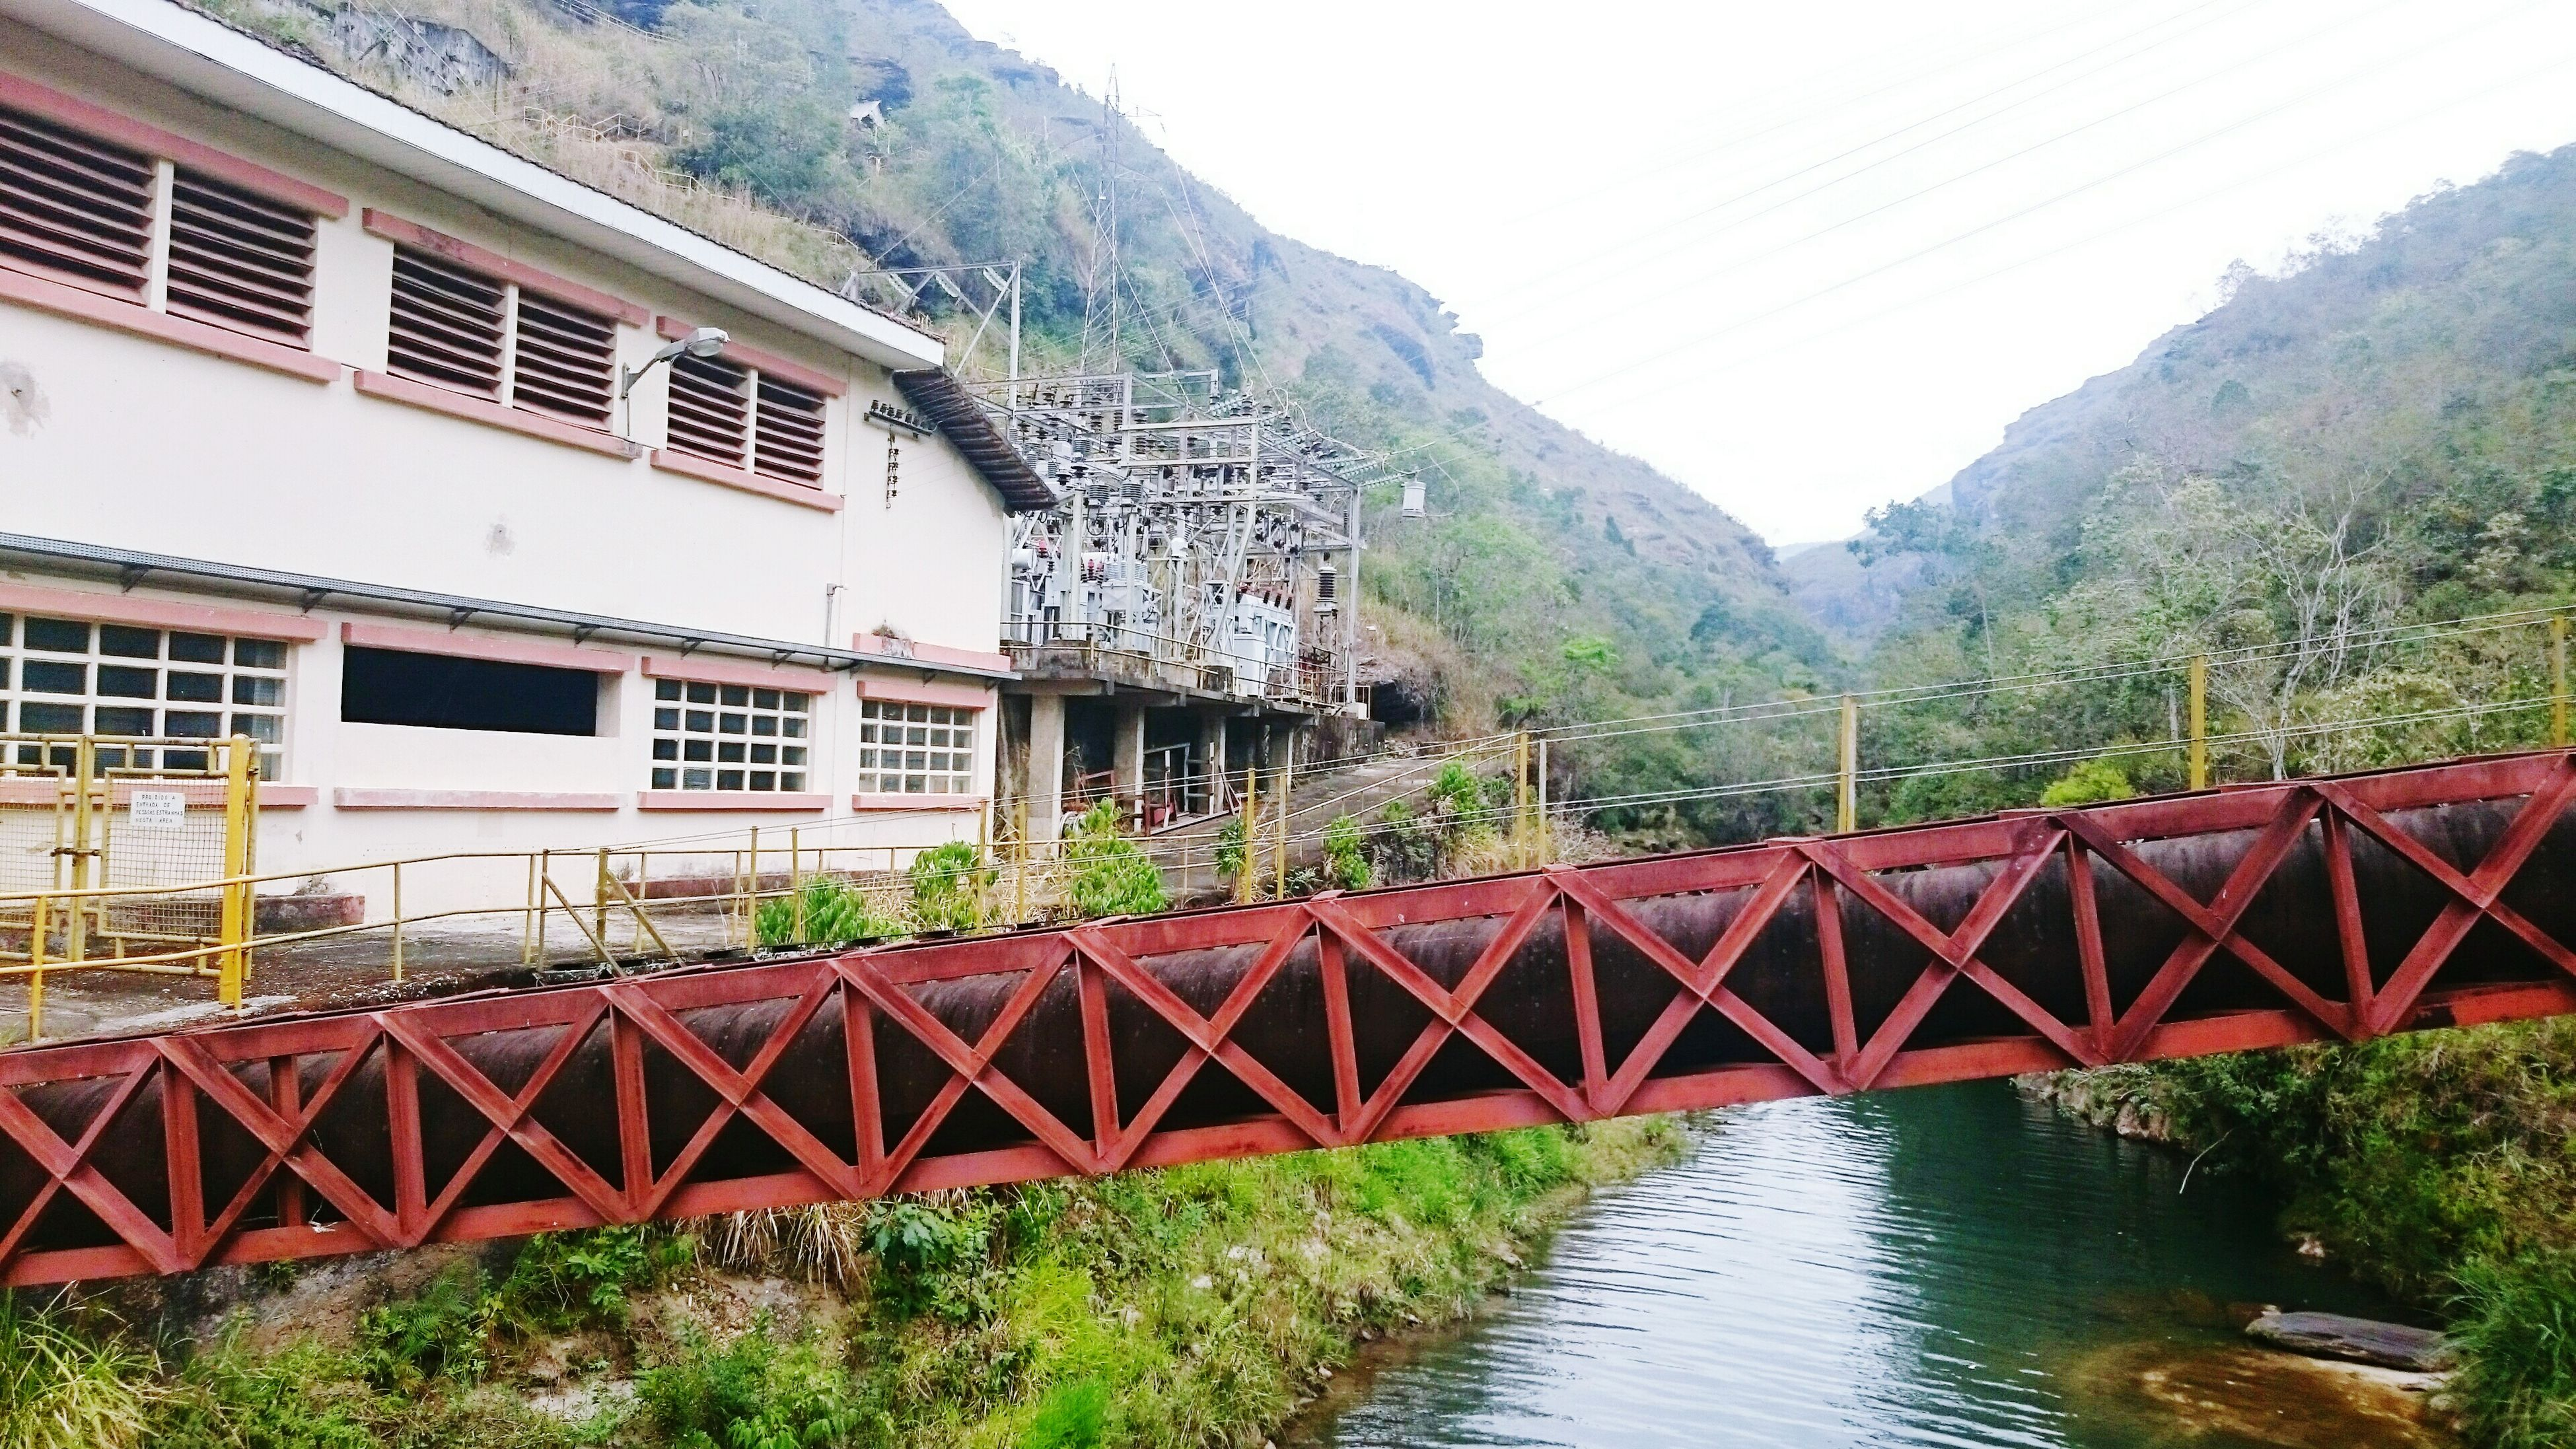 architecture, built structure, water, building exterior, railing, connection, bridge - man made structure, canal, mountain, river, tree, footbridge, house, clear sky, day, bridge, residential structure, waterfront, plant, nature